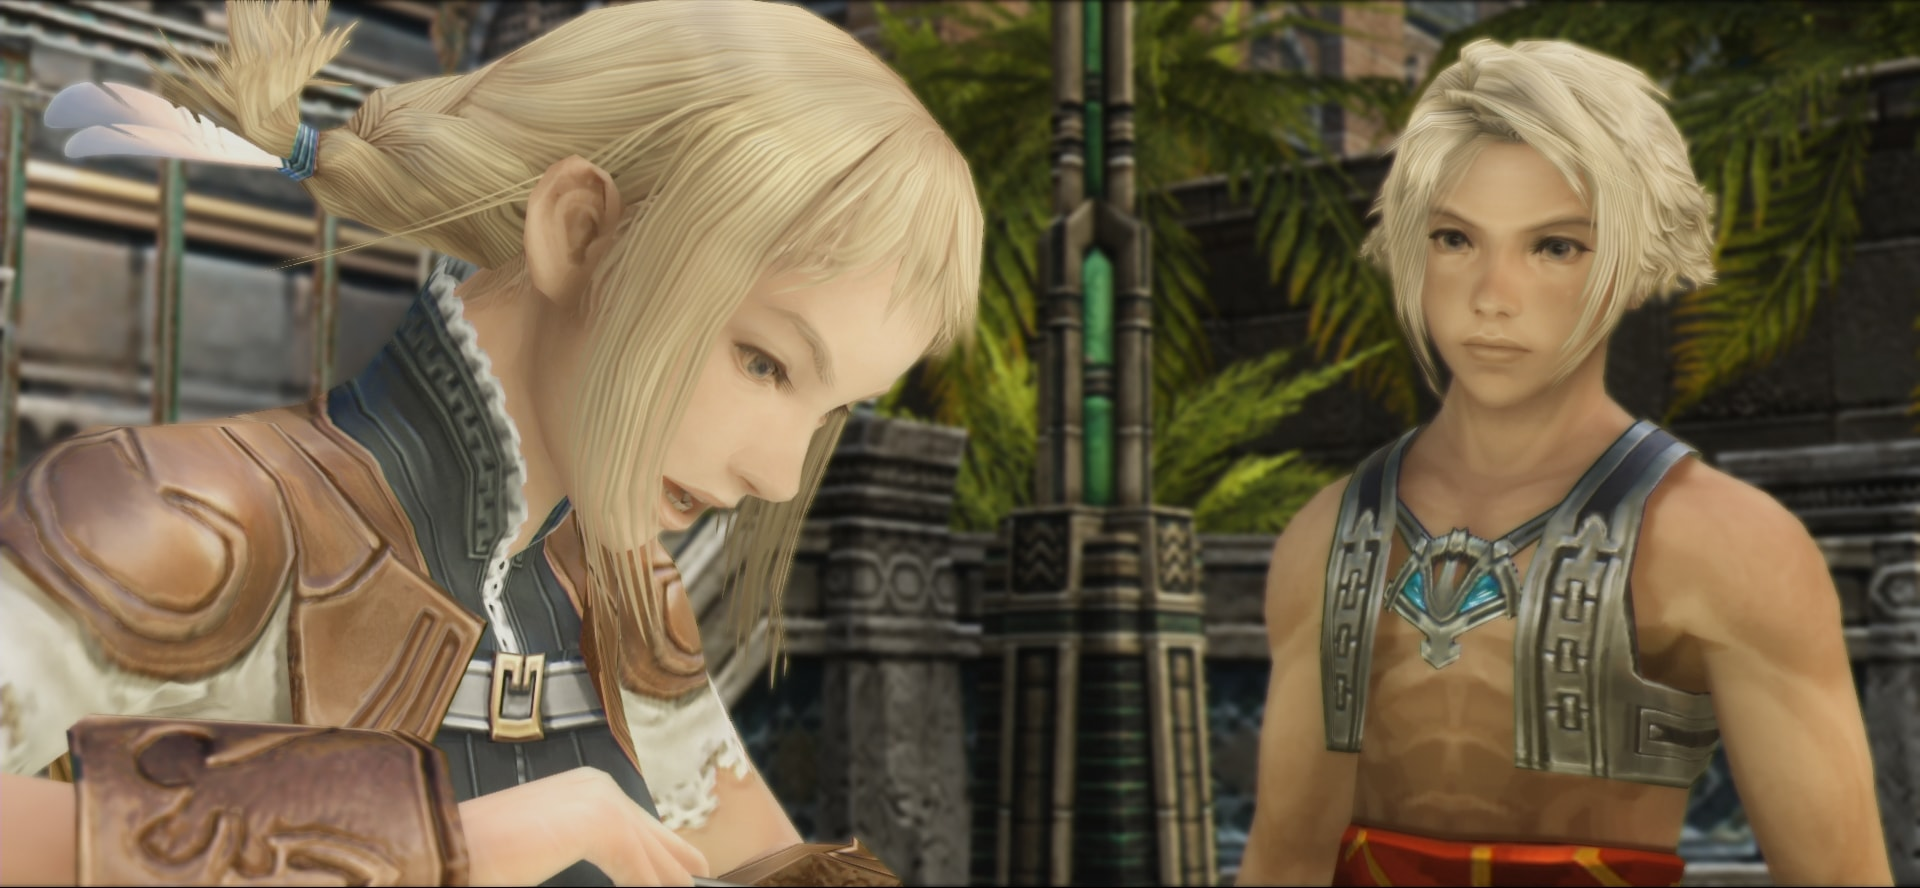 Final Fantasy XII: The Zodiac Age Gets Release Date